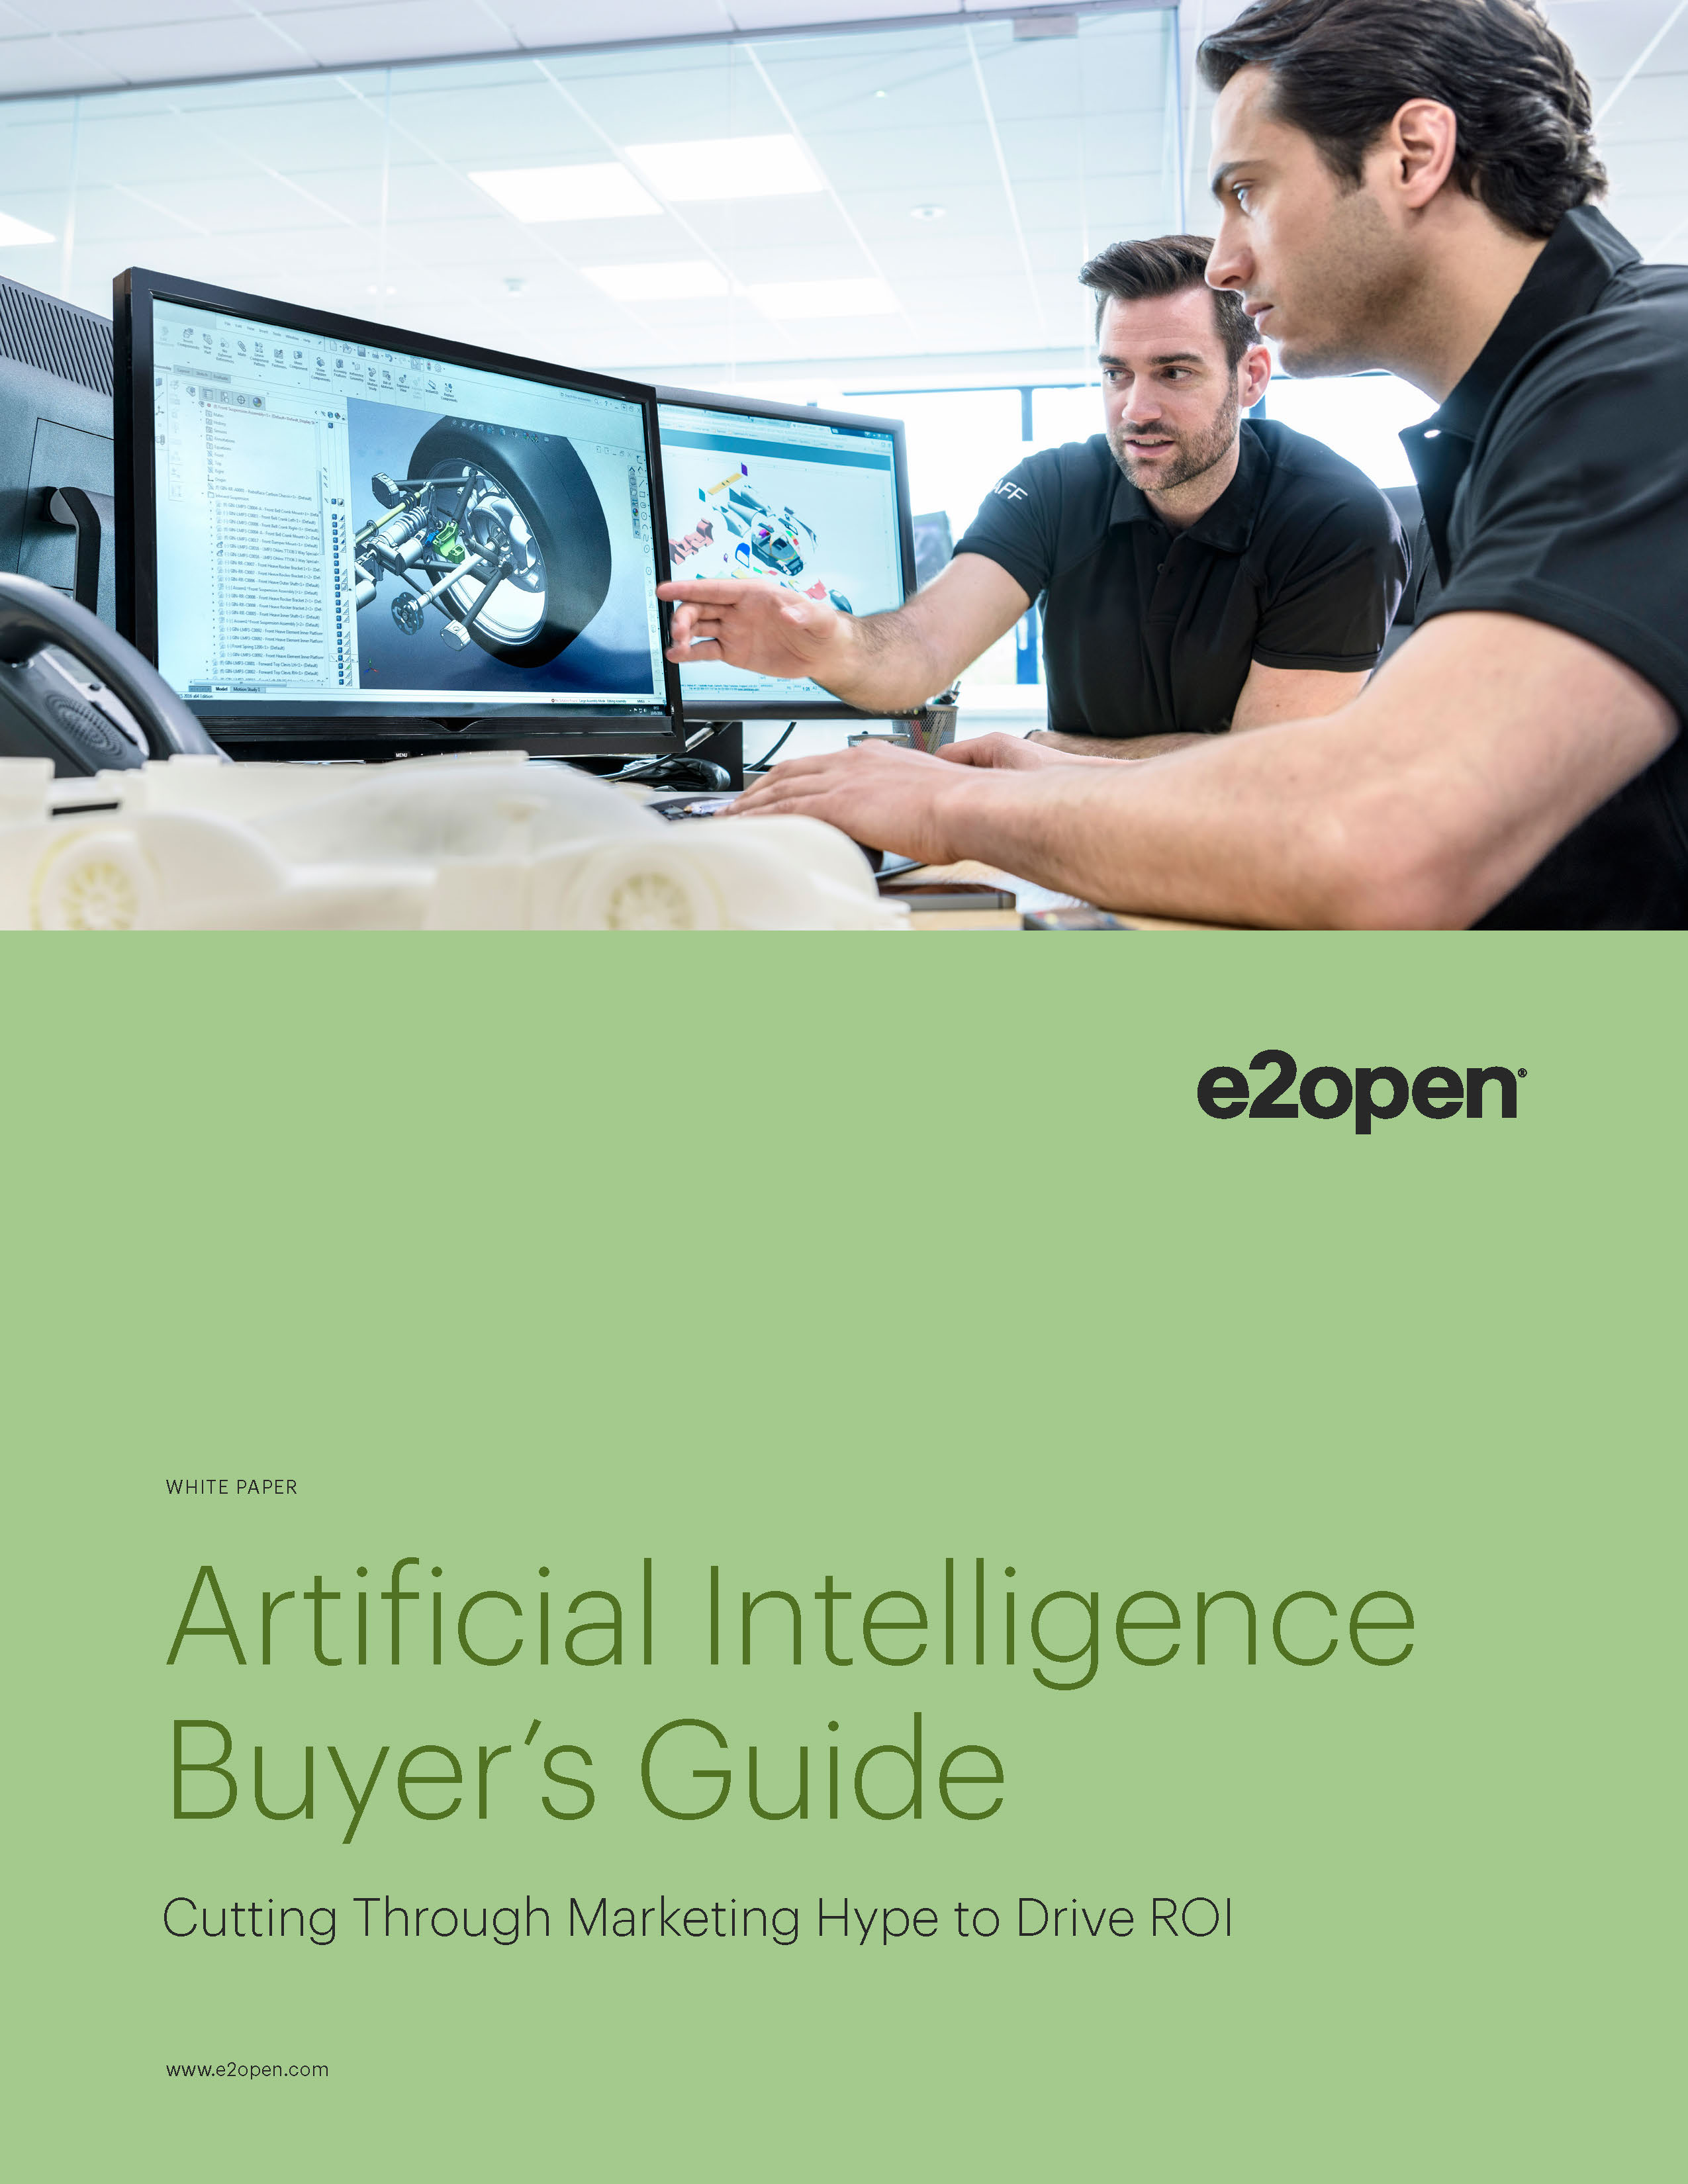 Artificial Intelligence Buyer's Guide: Cutting Through Marketing Hype to Drive ROI